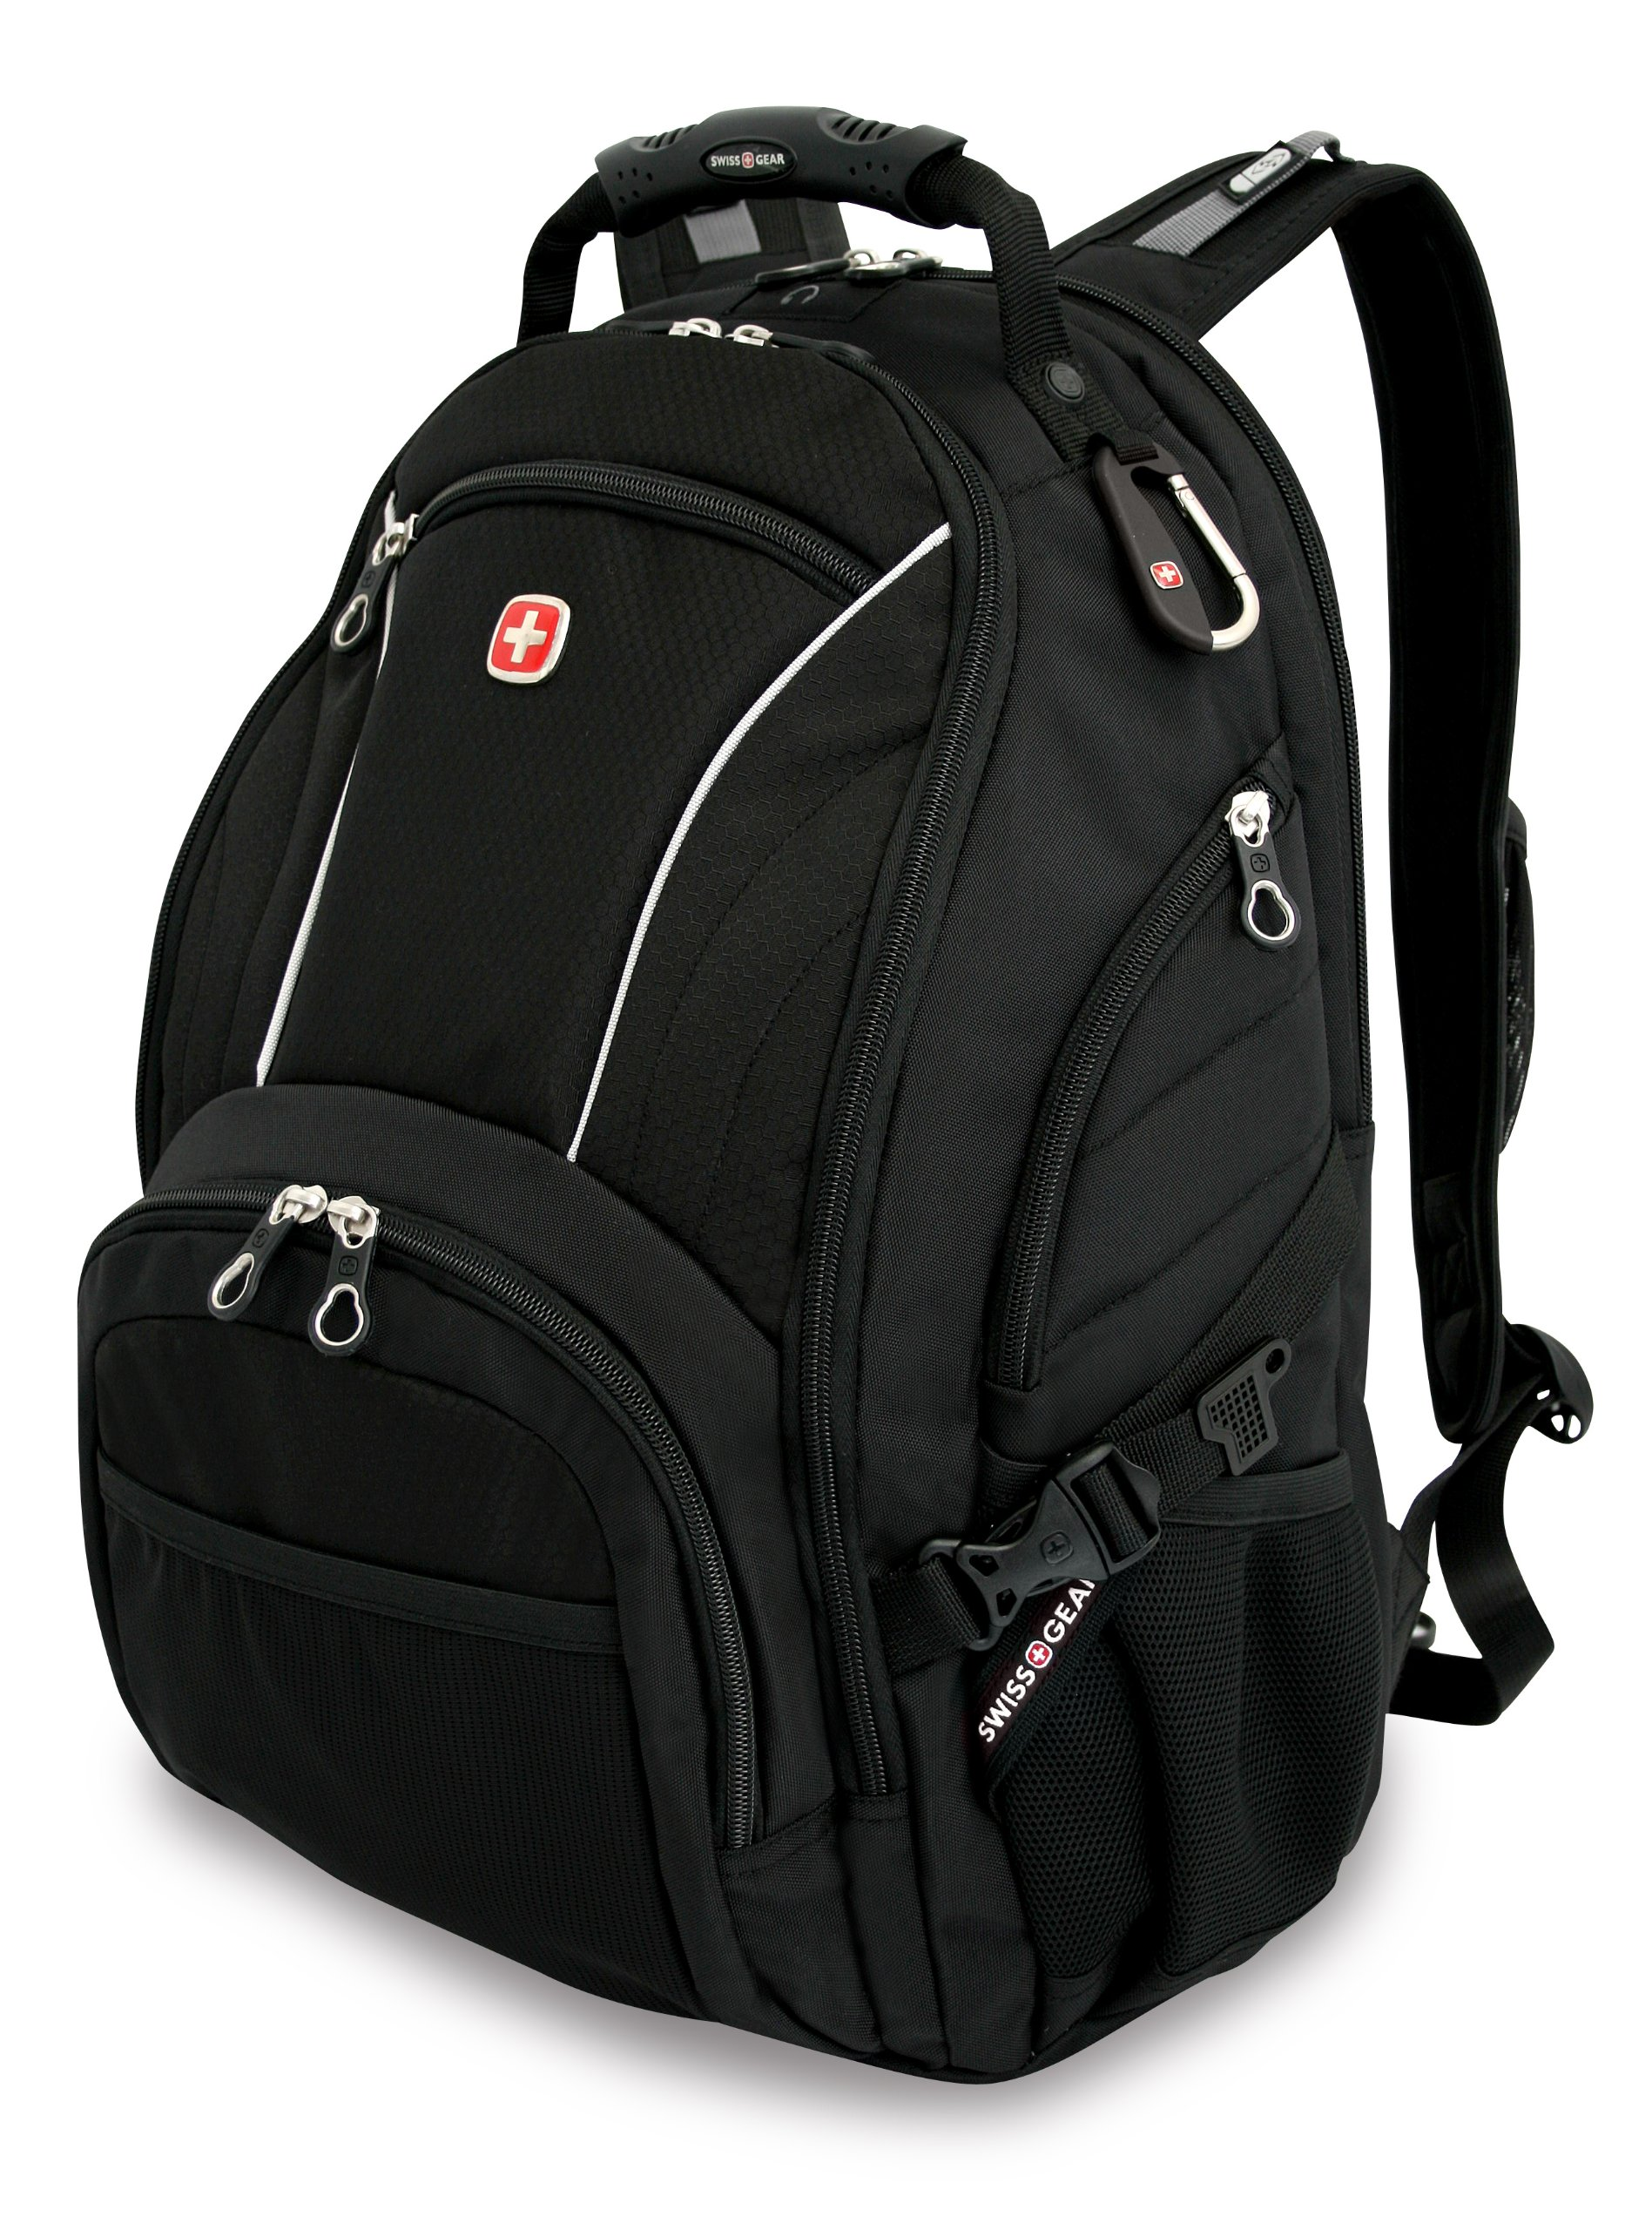 Swiss Gear SA3181 Black Computer Backpack - Fits Most 15 Inch Laptops and Tablets